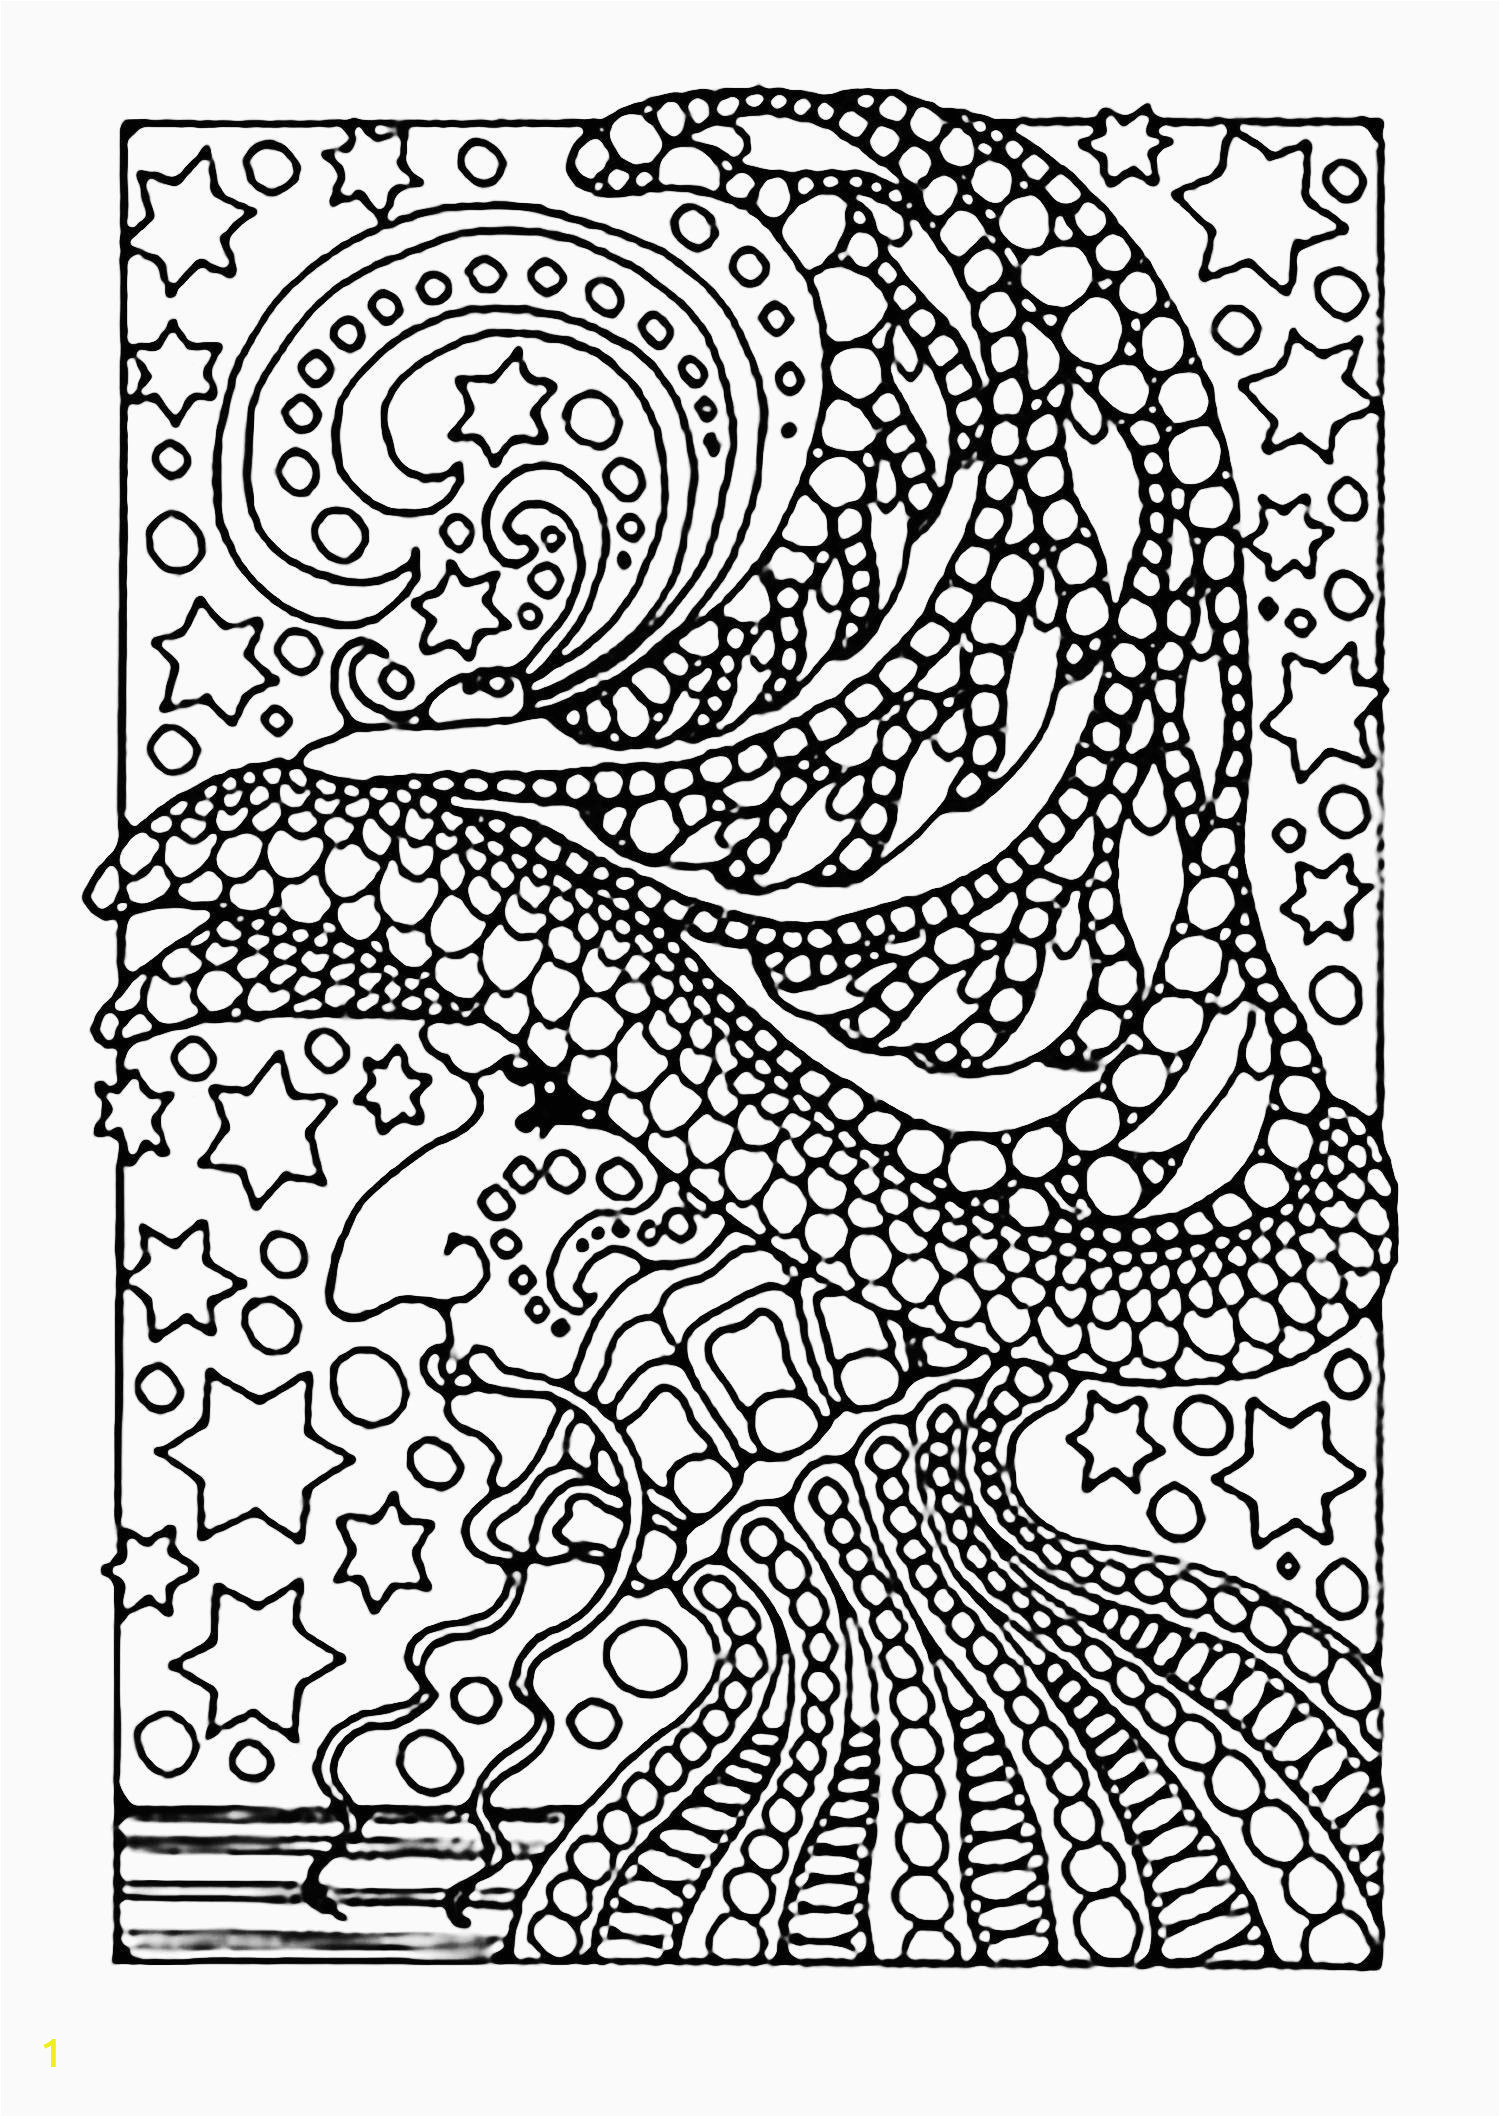 I Love You Coloring Pages I Love You Coloring Book Di 2020